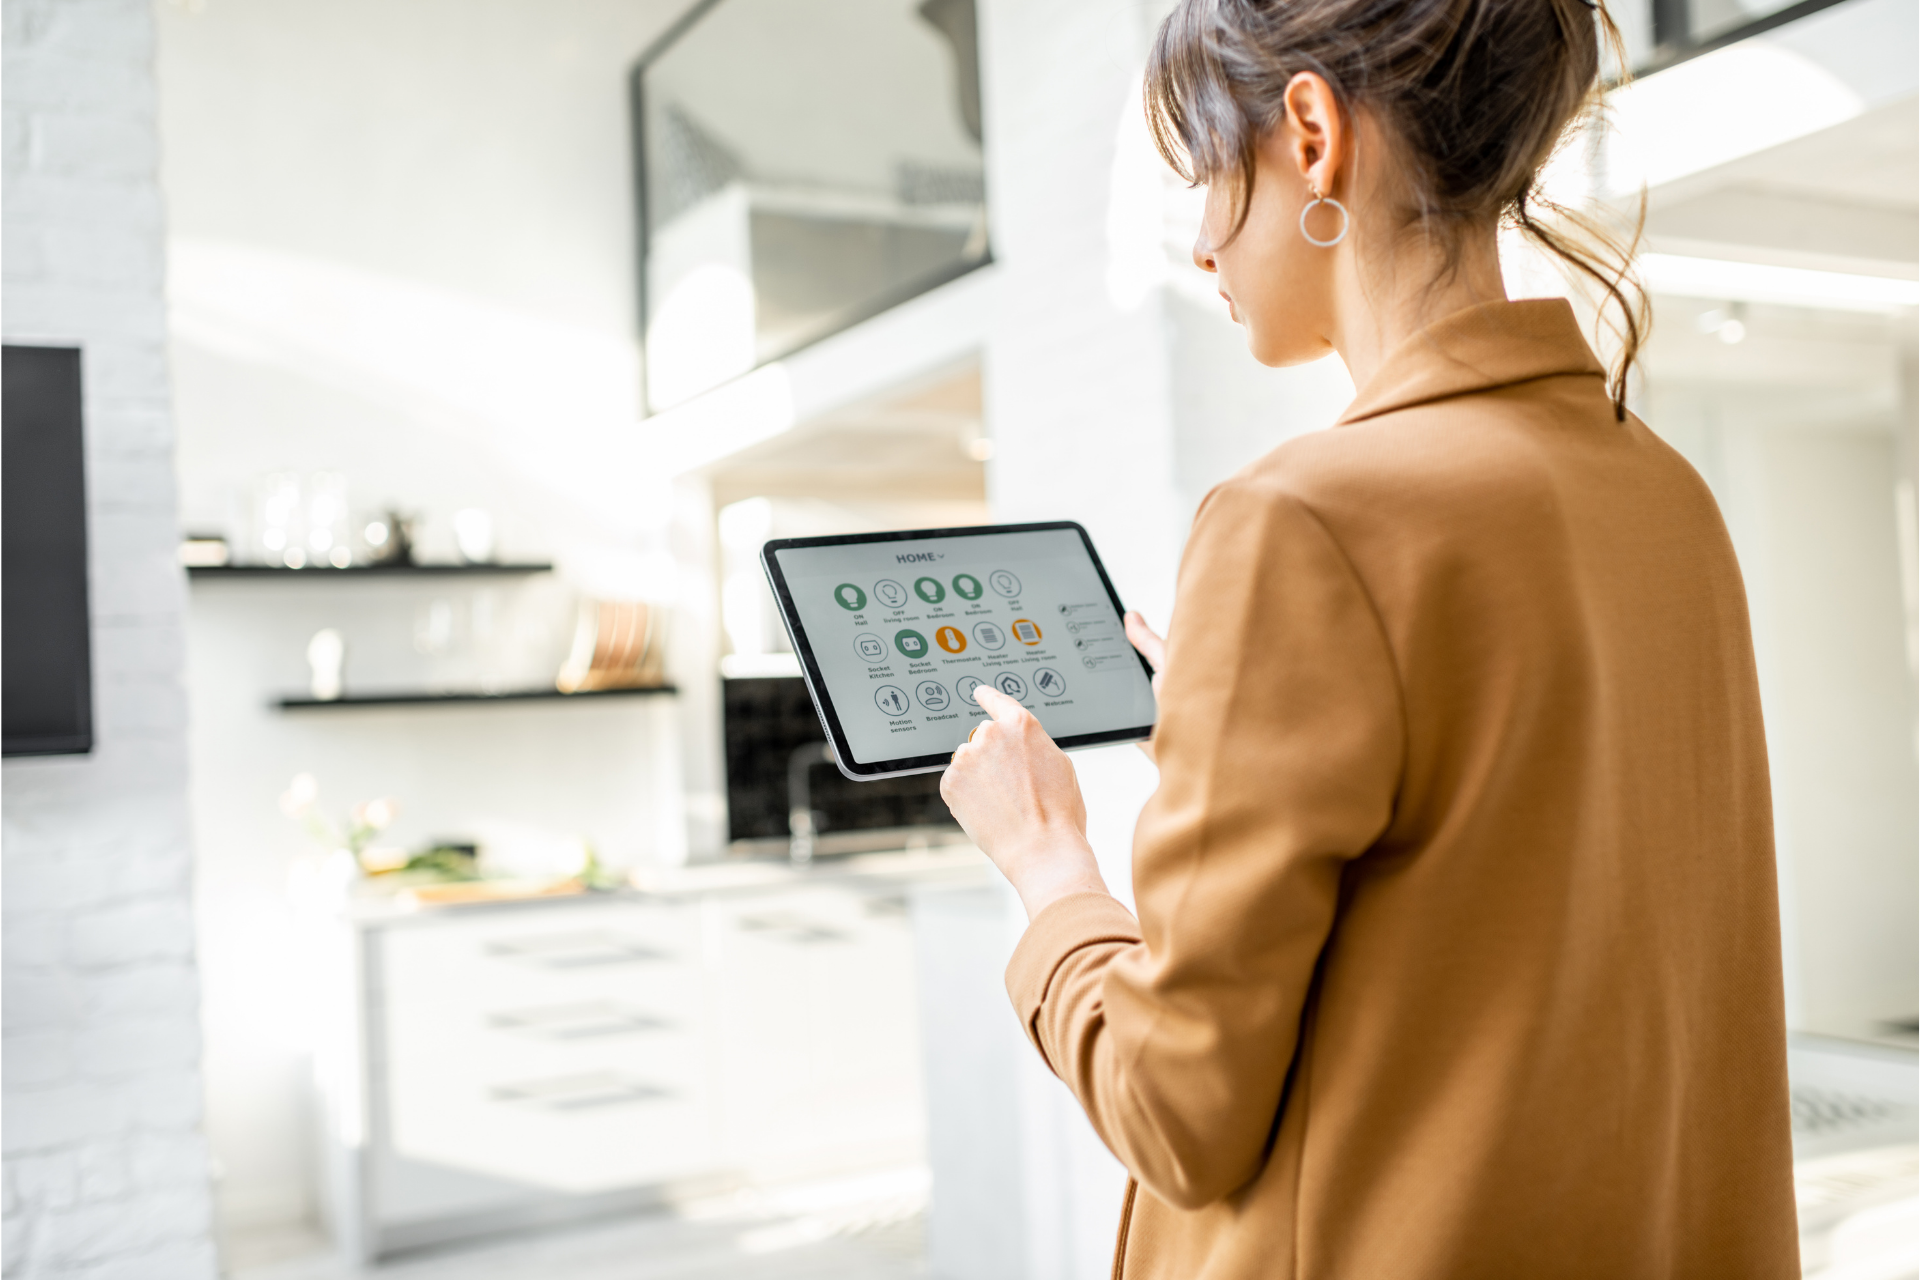 A woman uses a touch screen to operate her smart kitchen